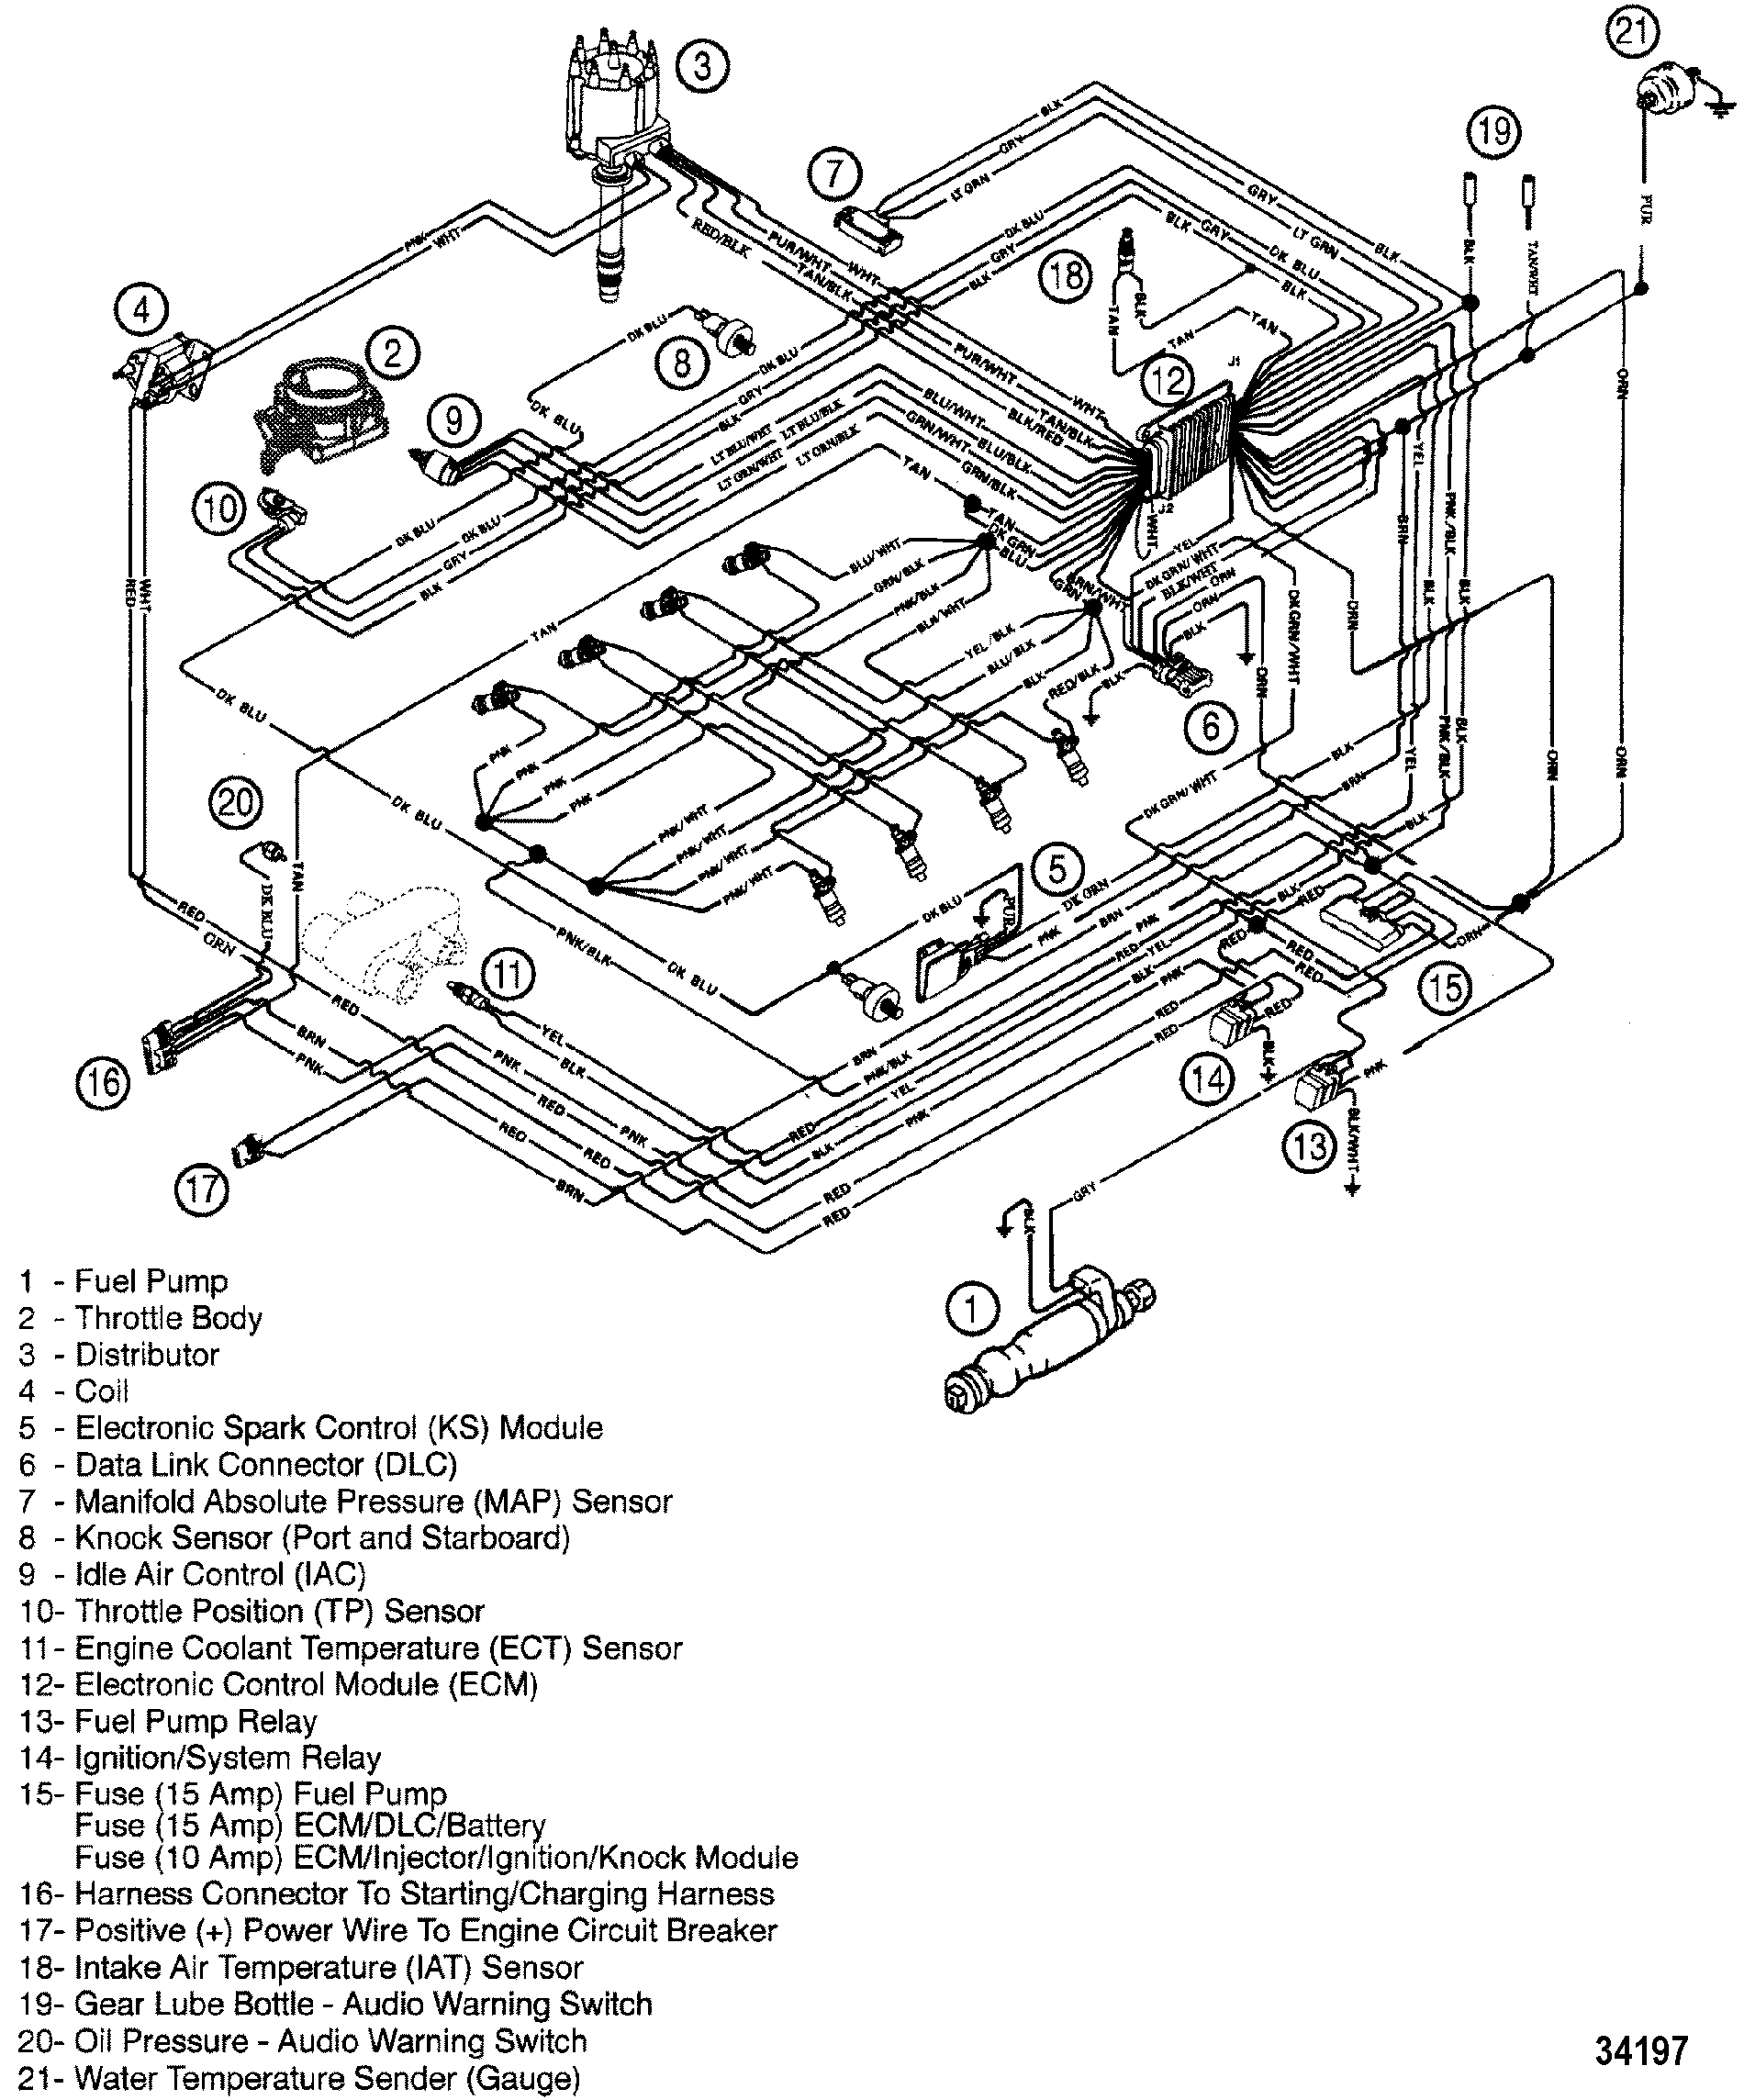 34197 1997 mercruiser 454 wiring diagram mercruiser cooling system thunderbolt iv wiring diagram at gsmx.co